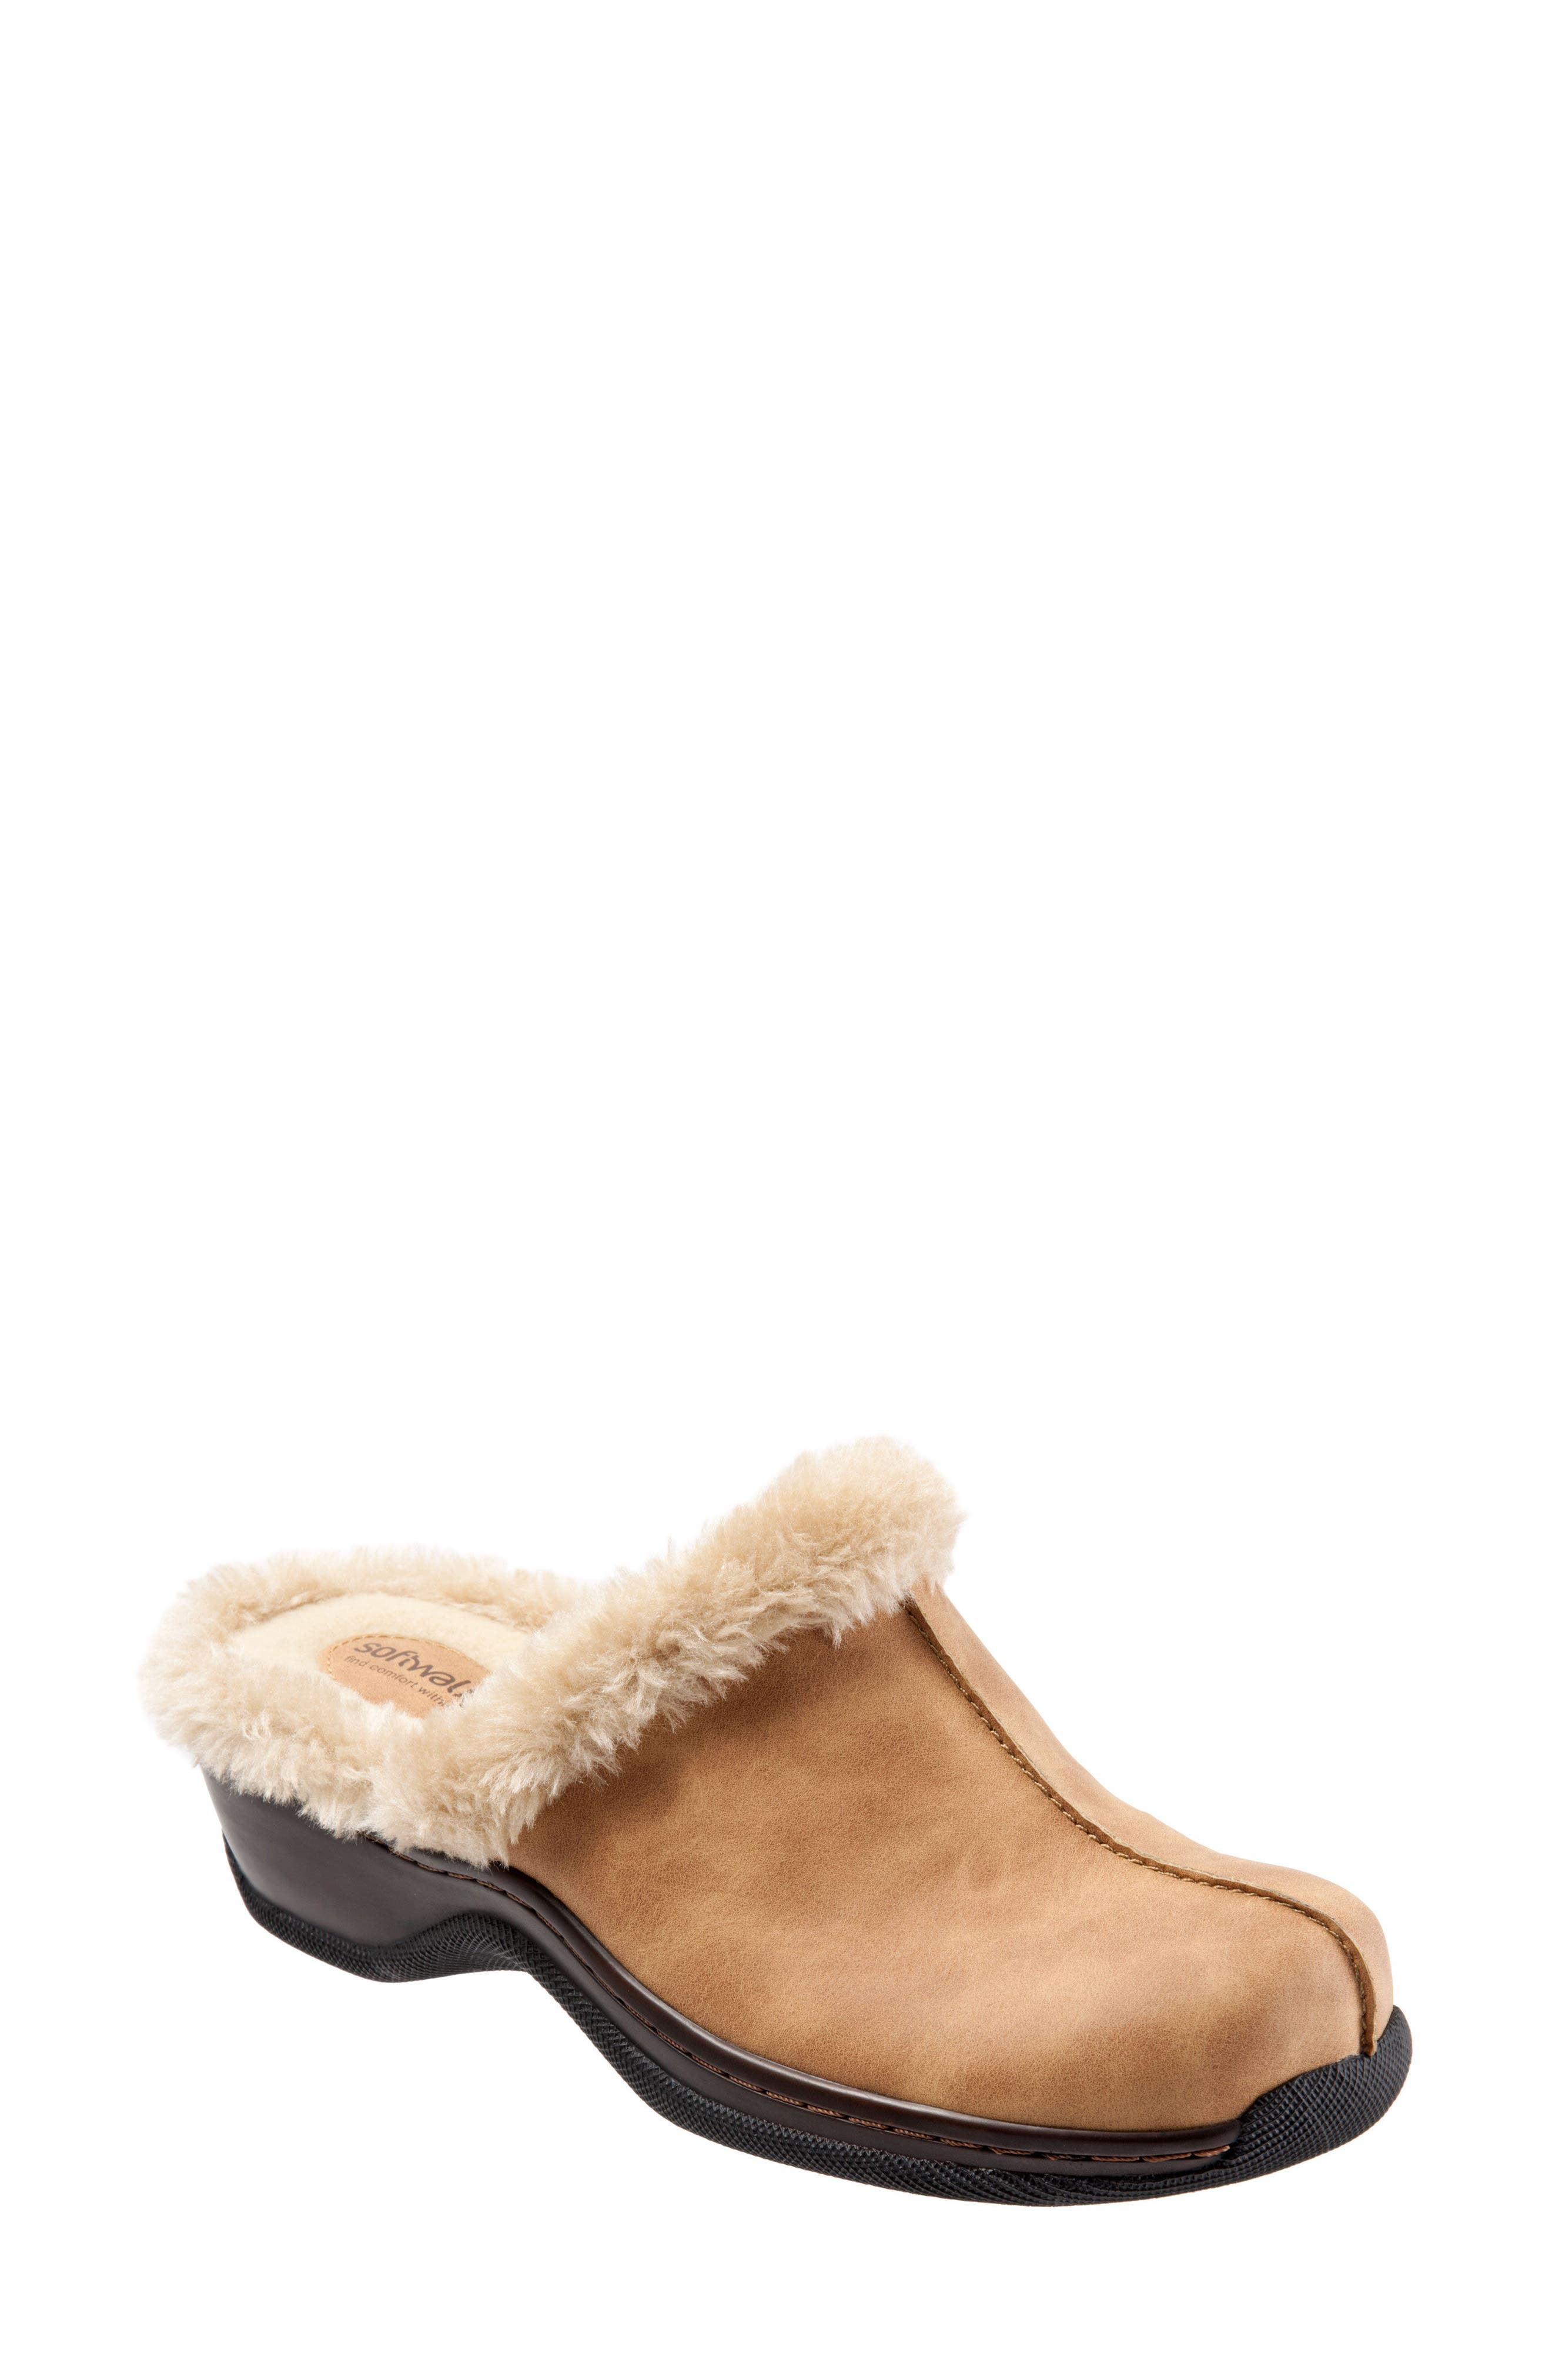 Alternate Image 1 Selected - SoftWalk® Abigail Clog with Faux Shearling Trim (Women)